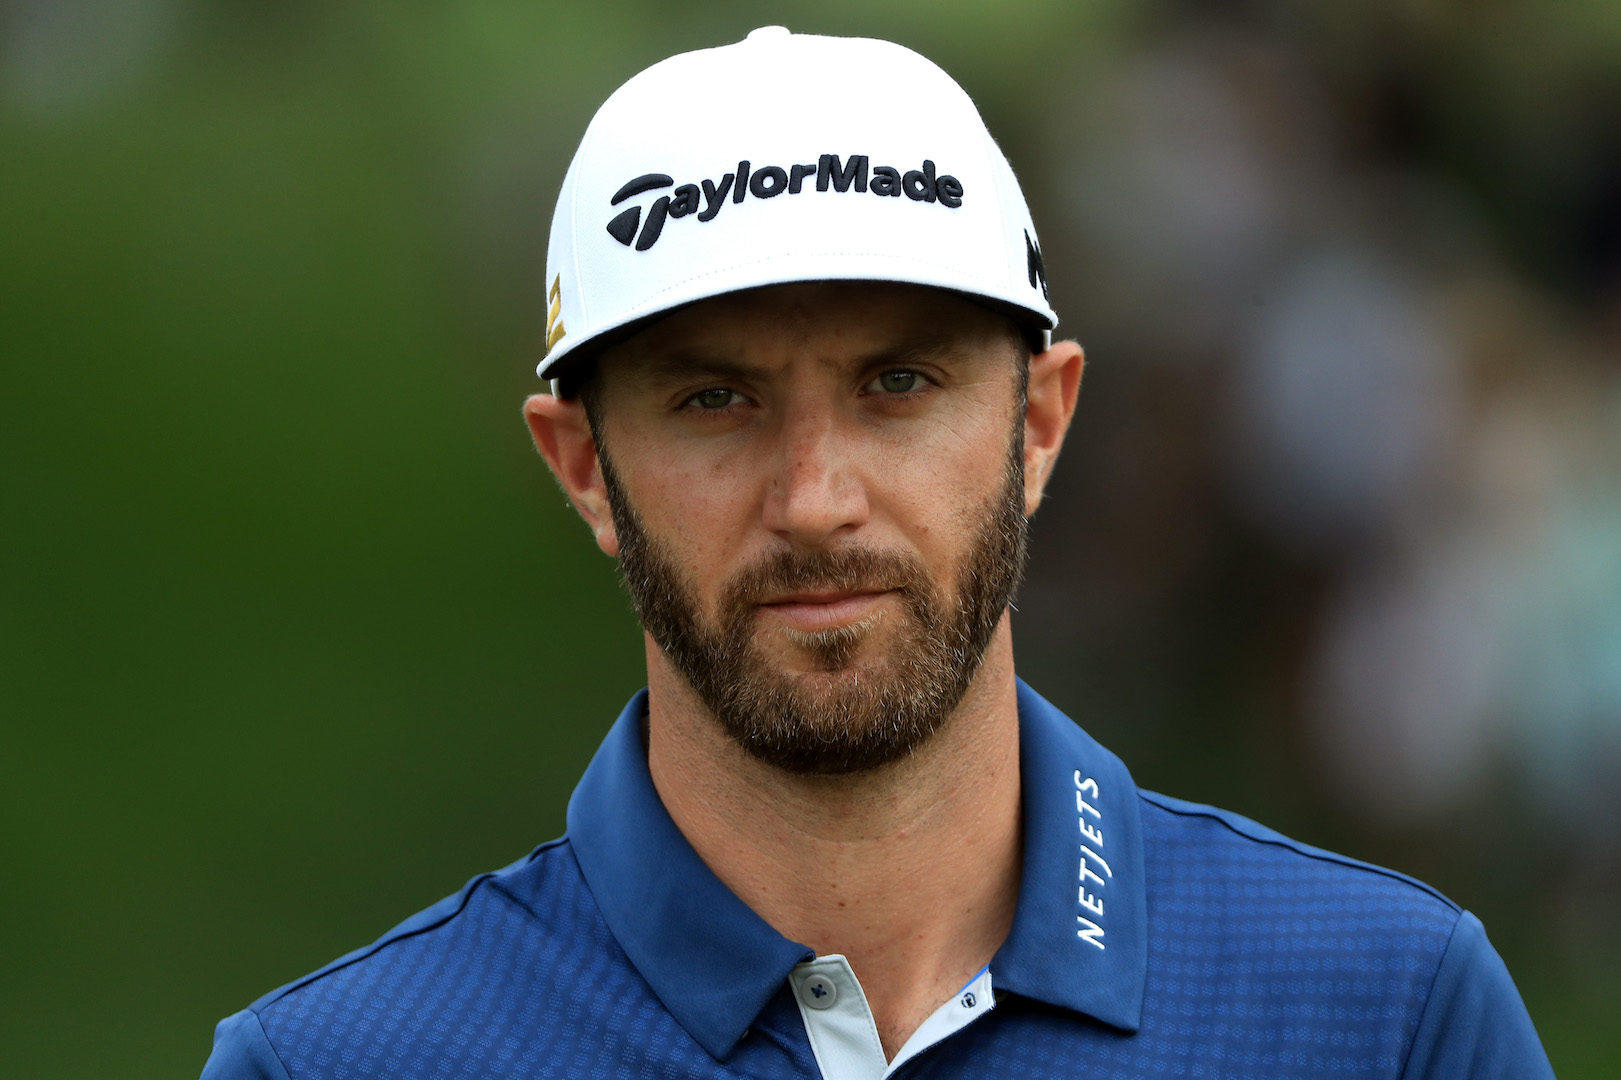 Dustin Johnson pulls out of Olympics